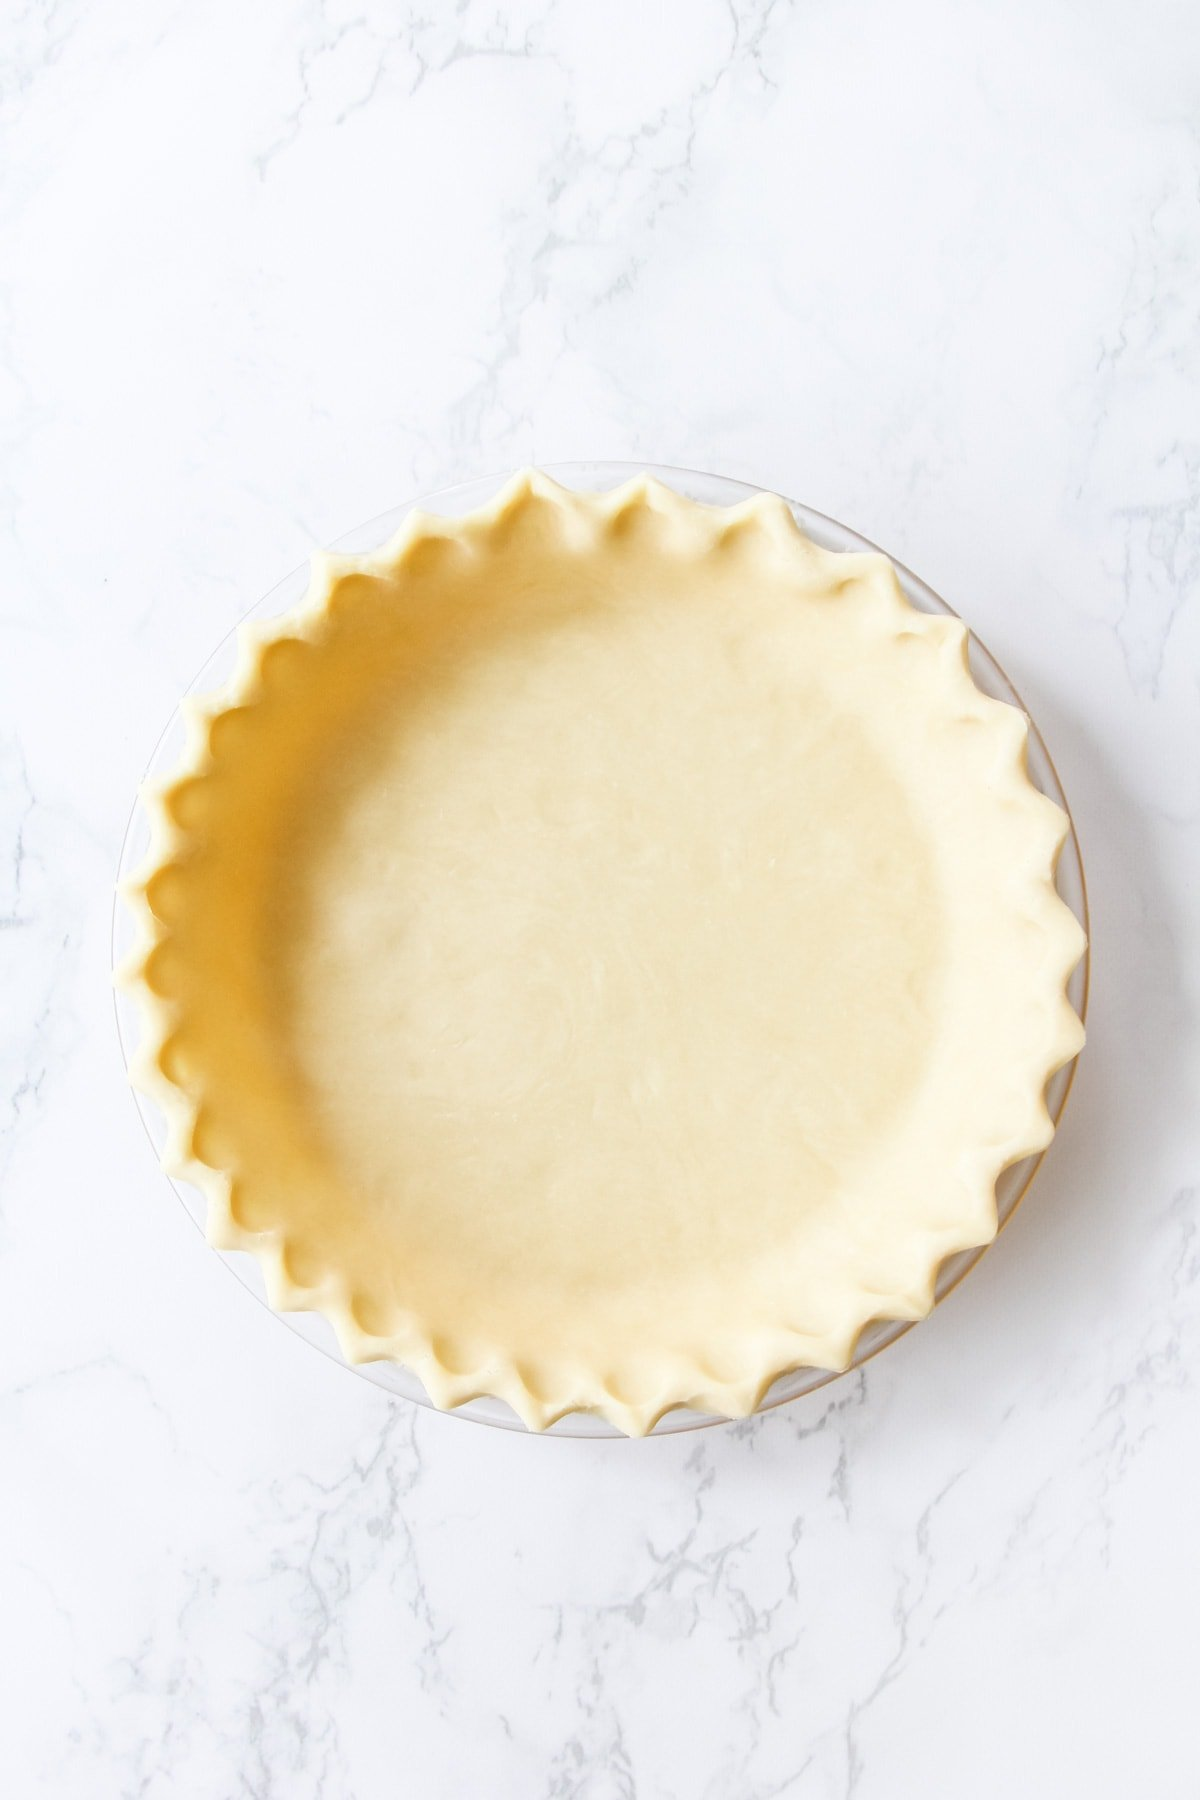 a top down view of an unbaked pie crust in a pie dish.